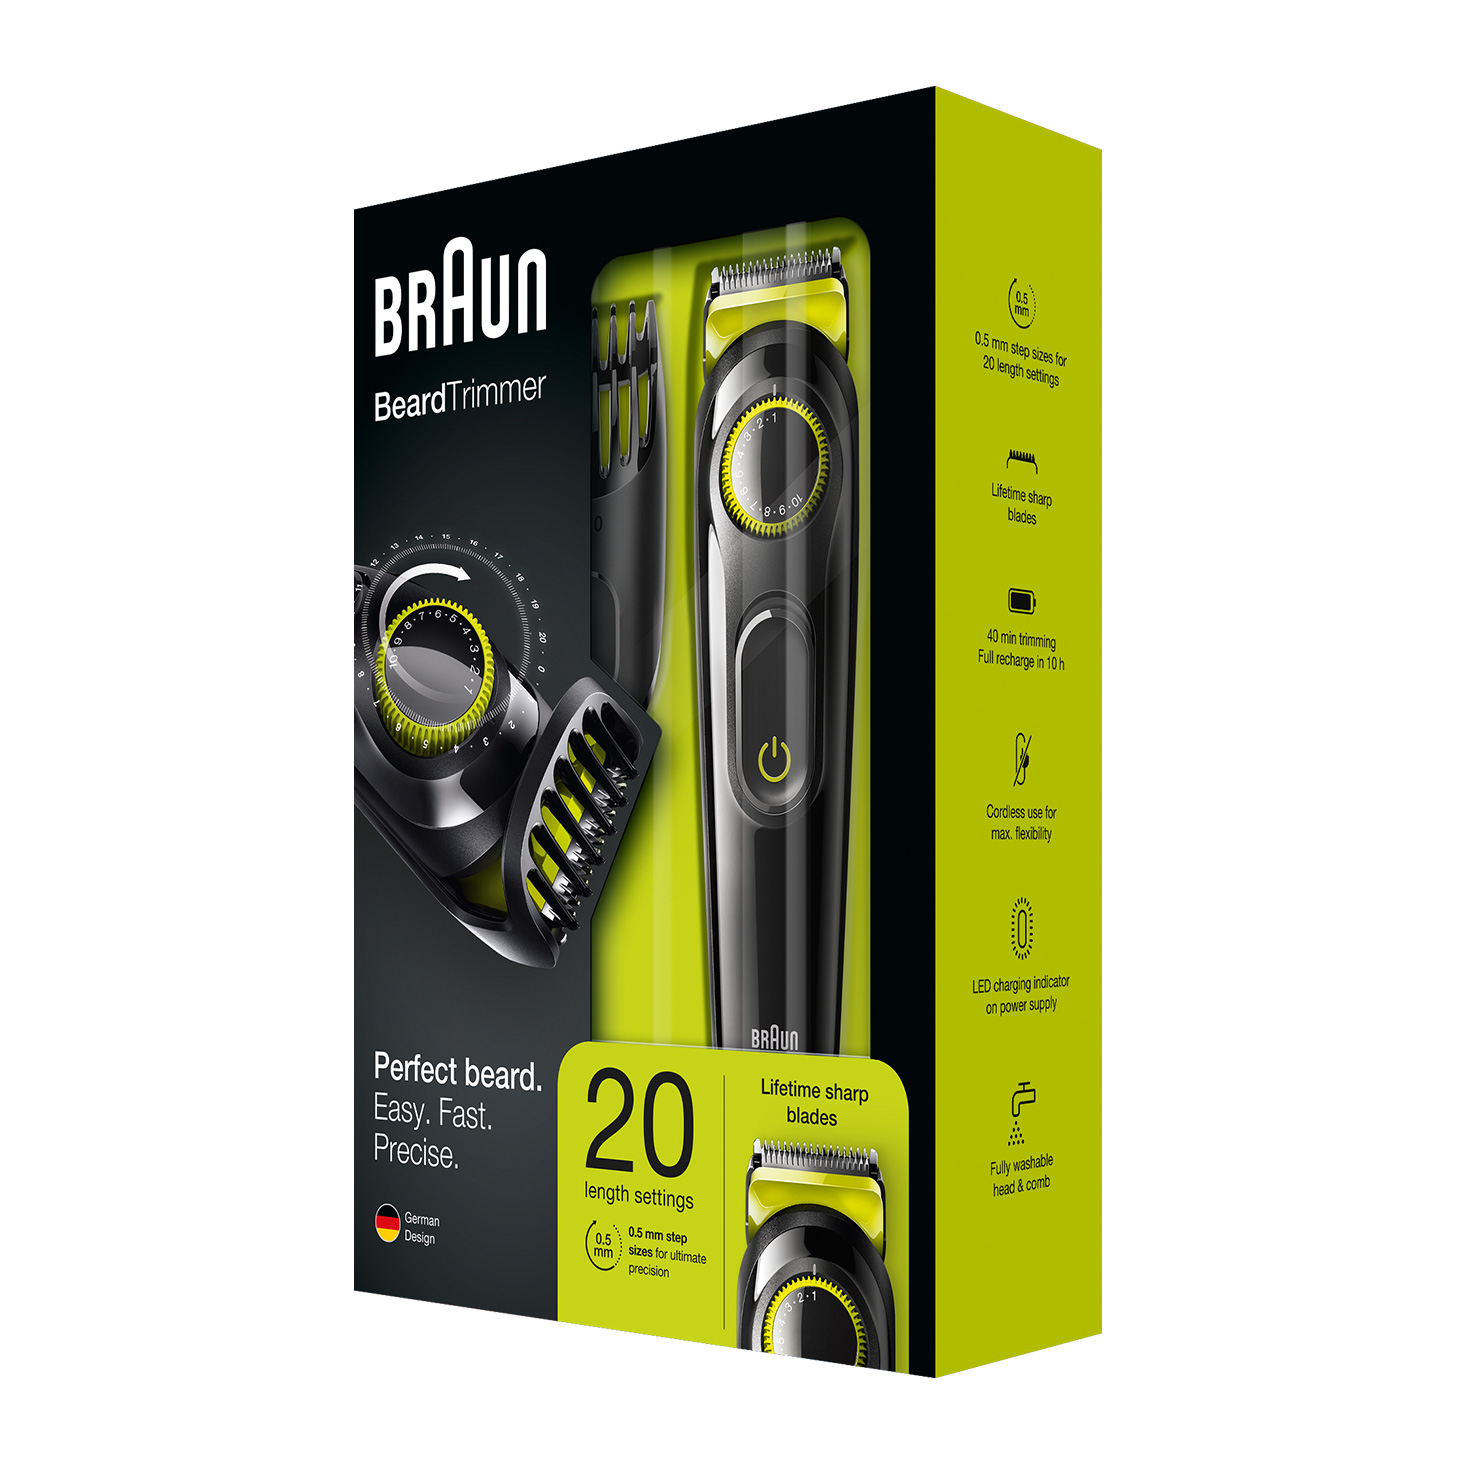 Braun BeardTrimmer BT3021 - Packaging